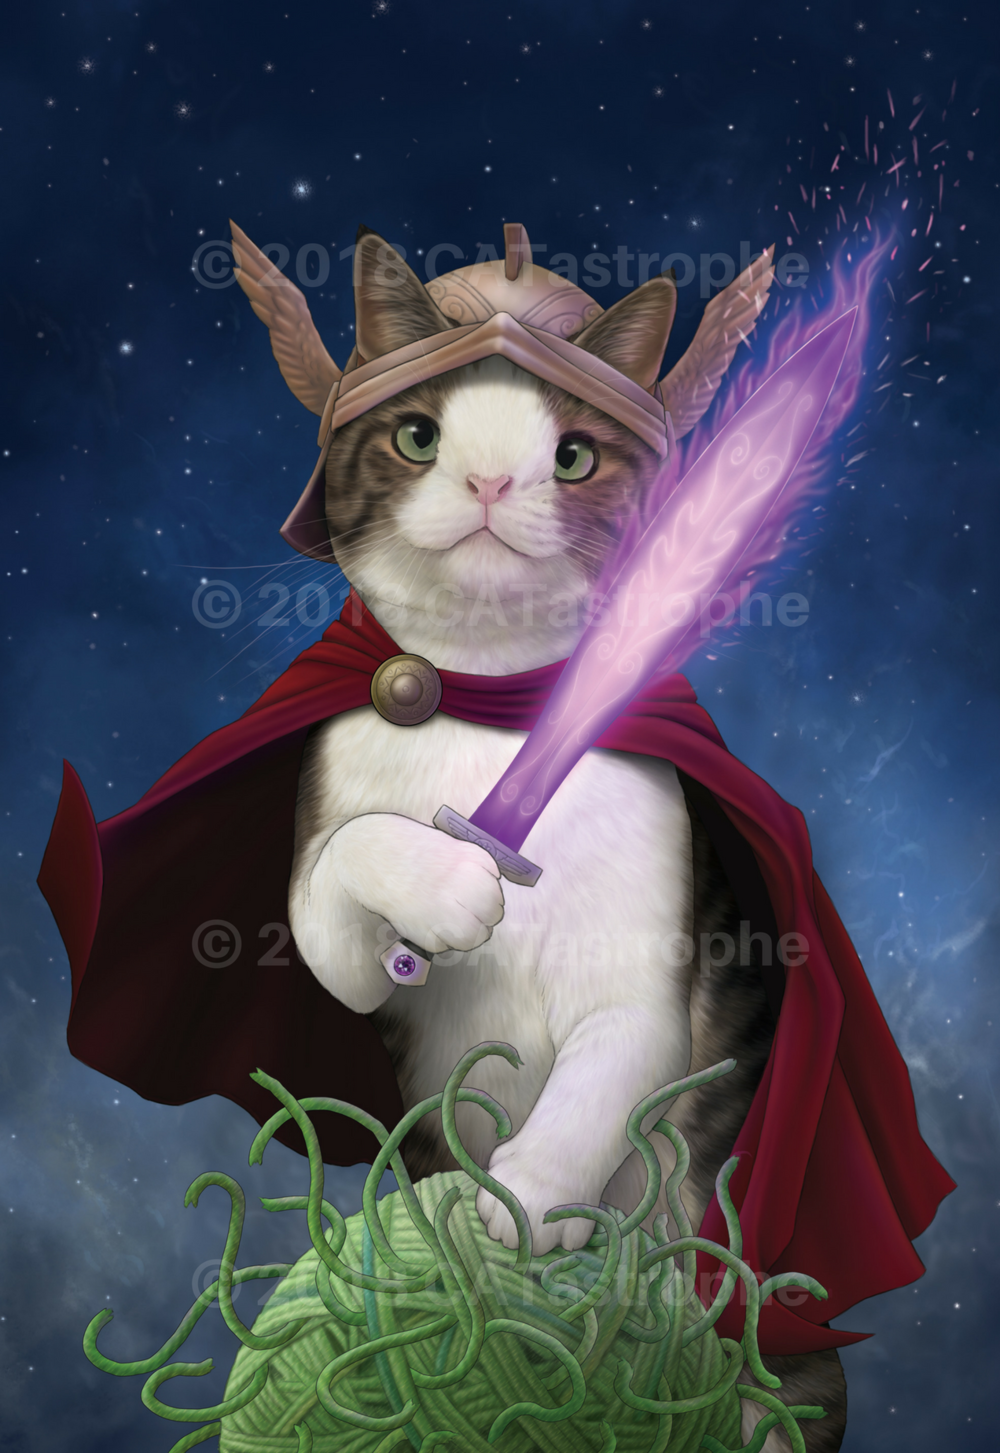 Purrseus: Hero of Happiness   Illustration inspired by:  @monty_happiness